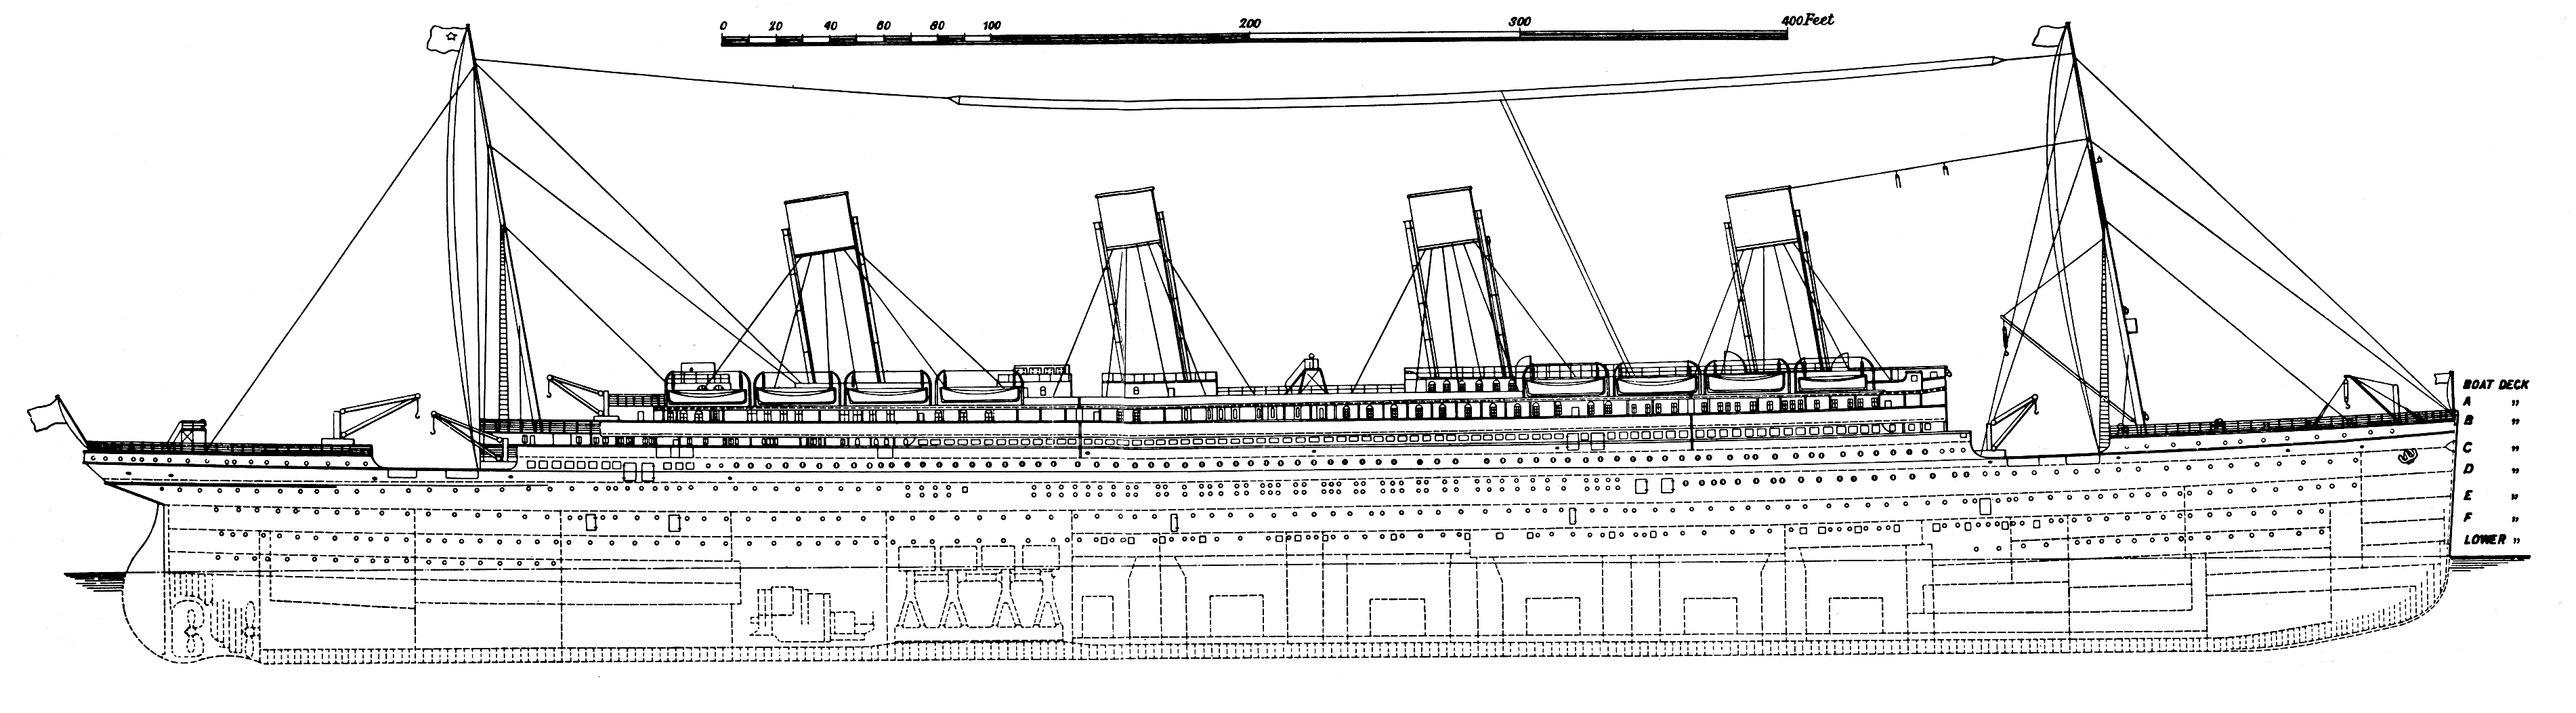 RMS Titanic Blueprint - Download free blueprint for 3D modeling